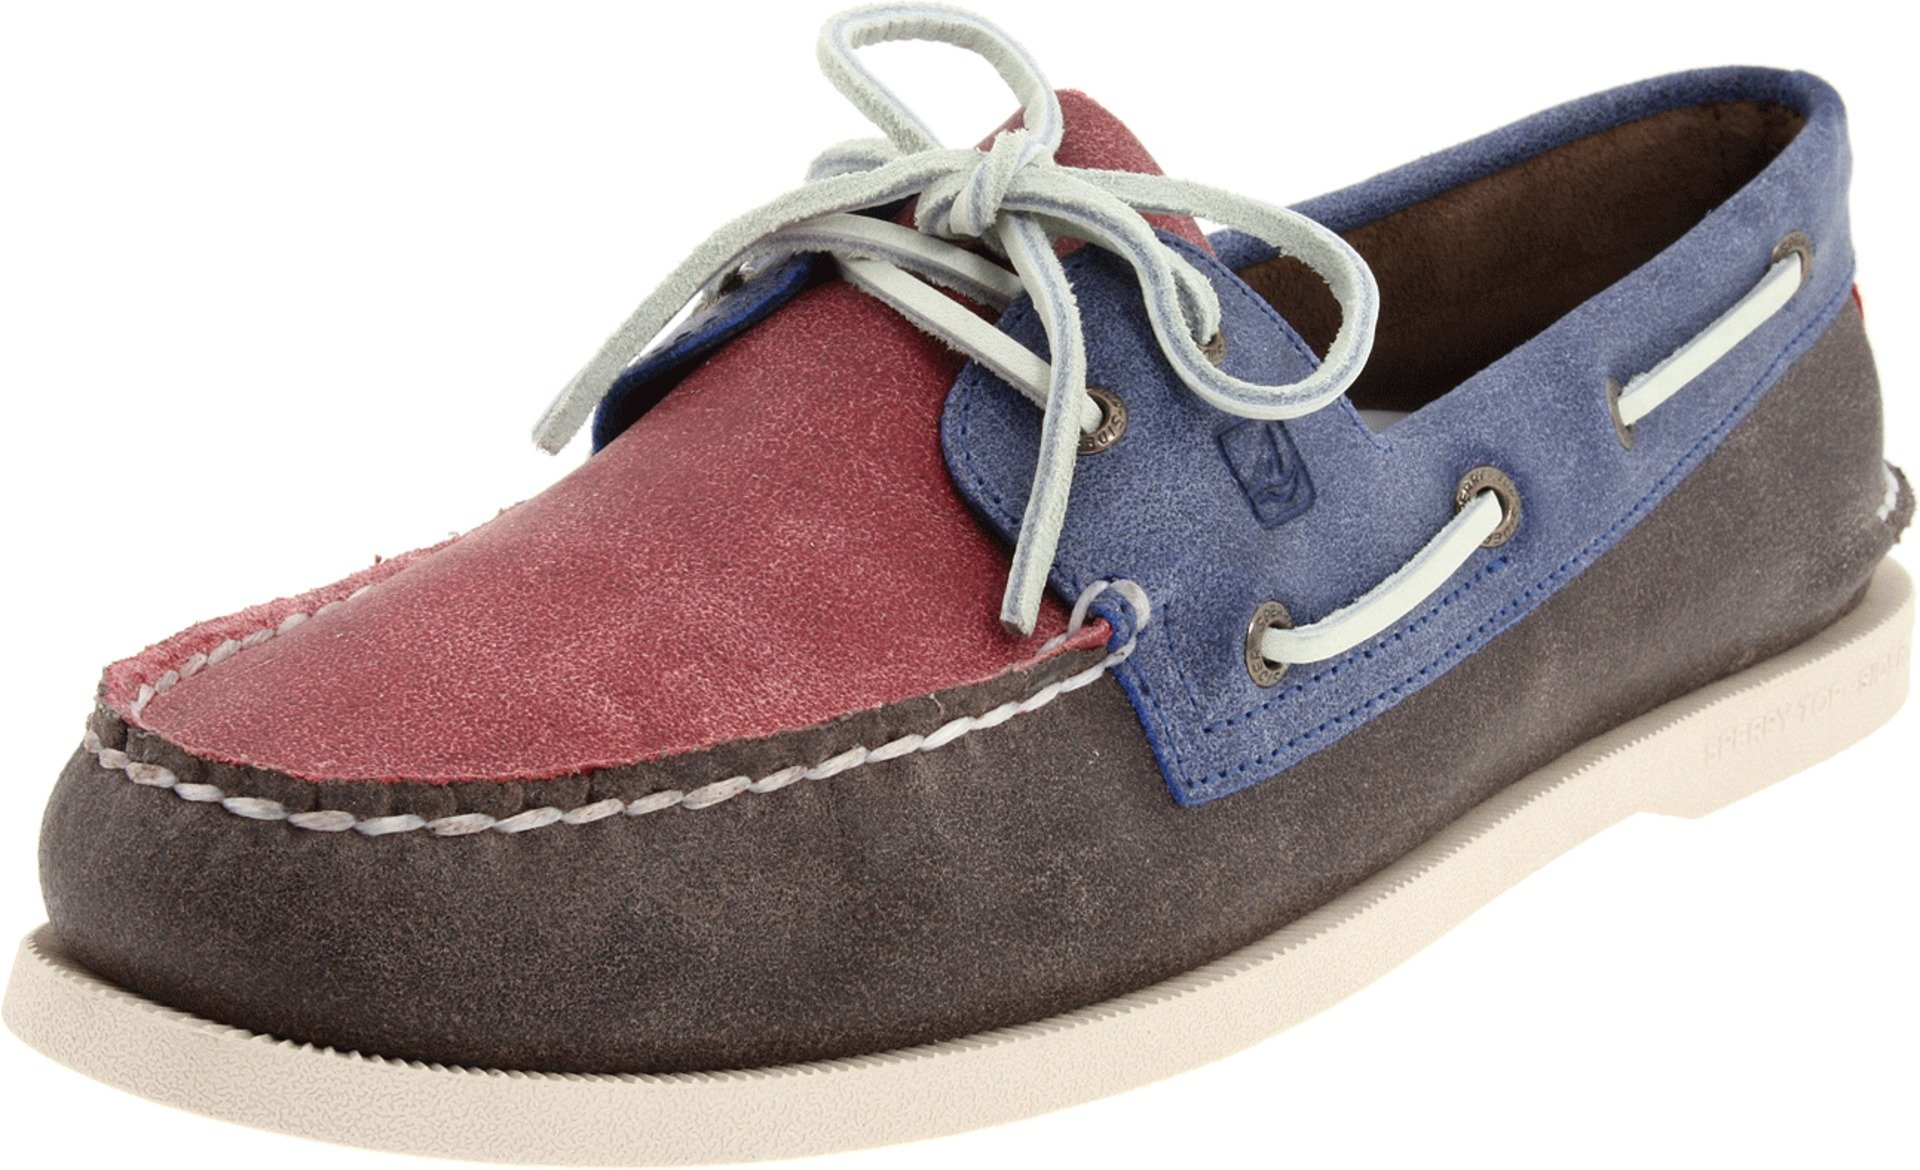 Sperry Top-Sider Men's A/O 2 Eye Salt Stained Boat Shoe,Blue/Brown/Red,8.5 M US by Sperry Top-Sider